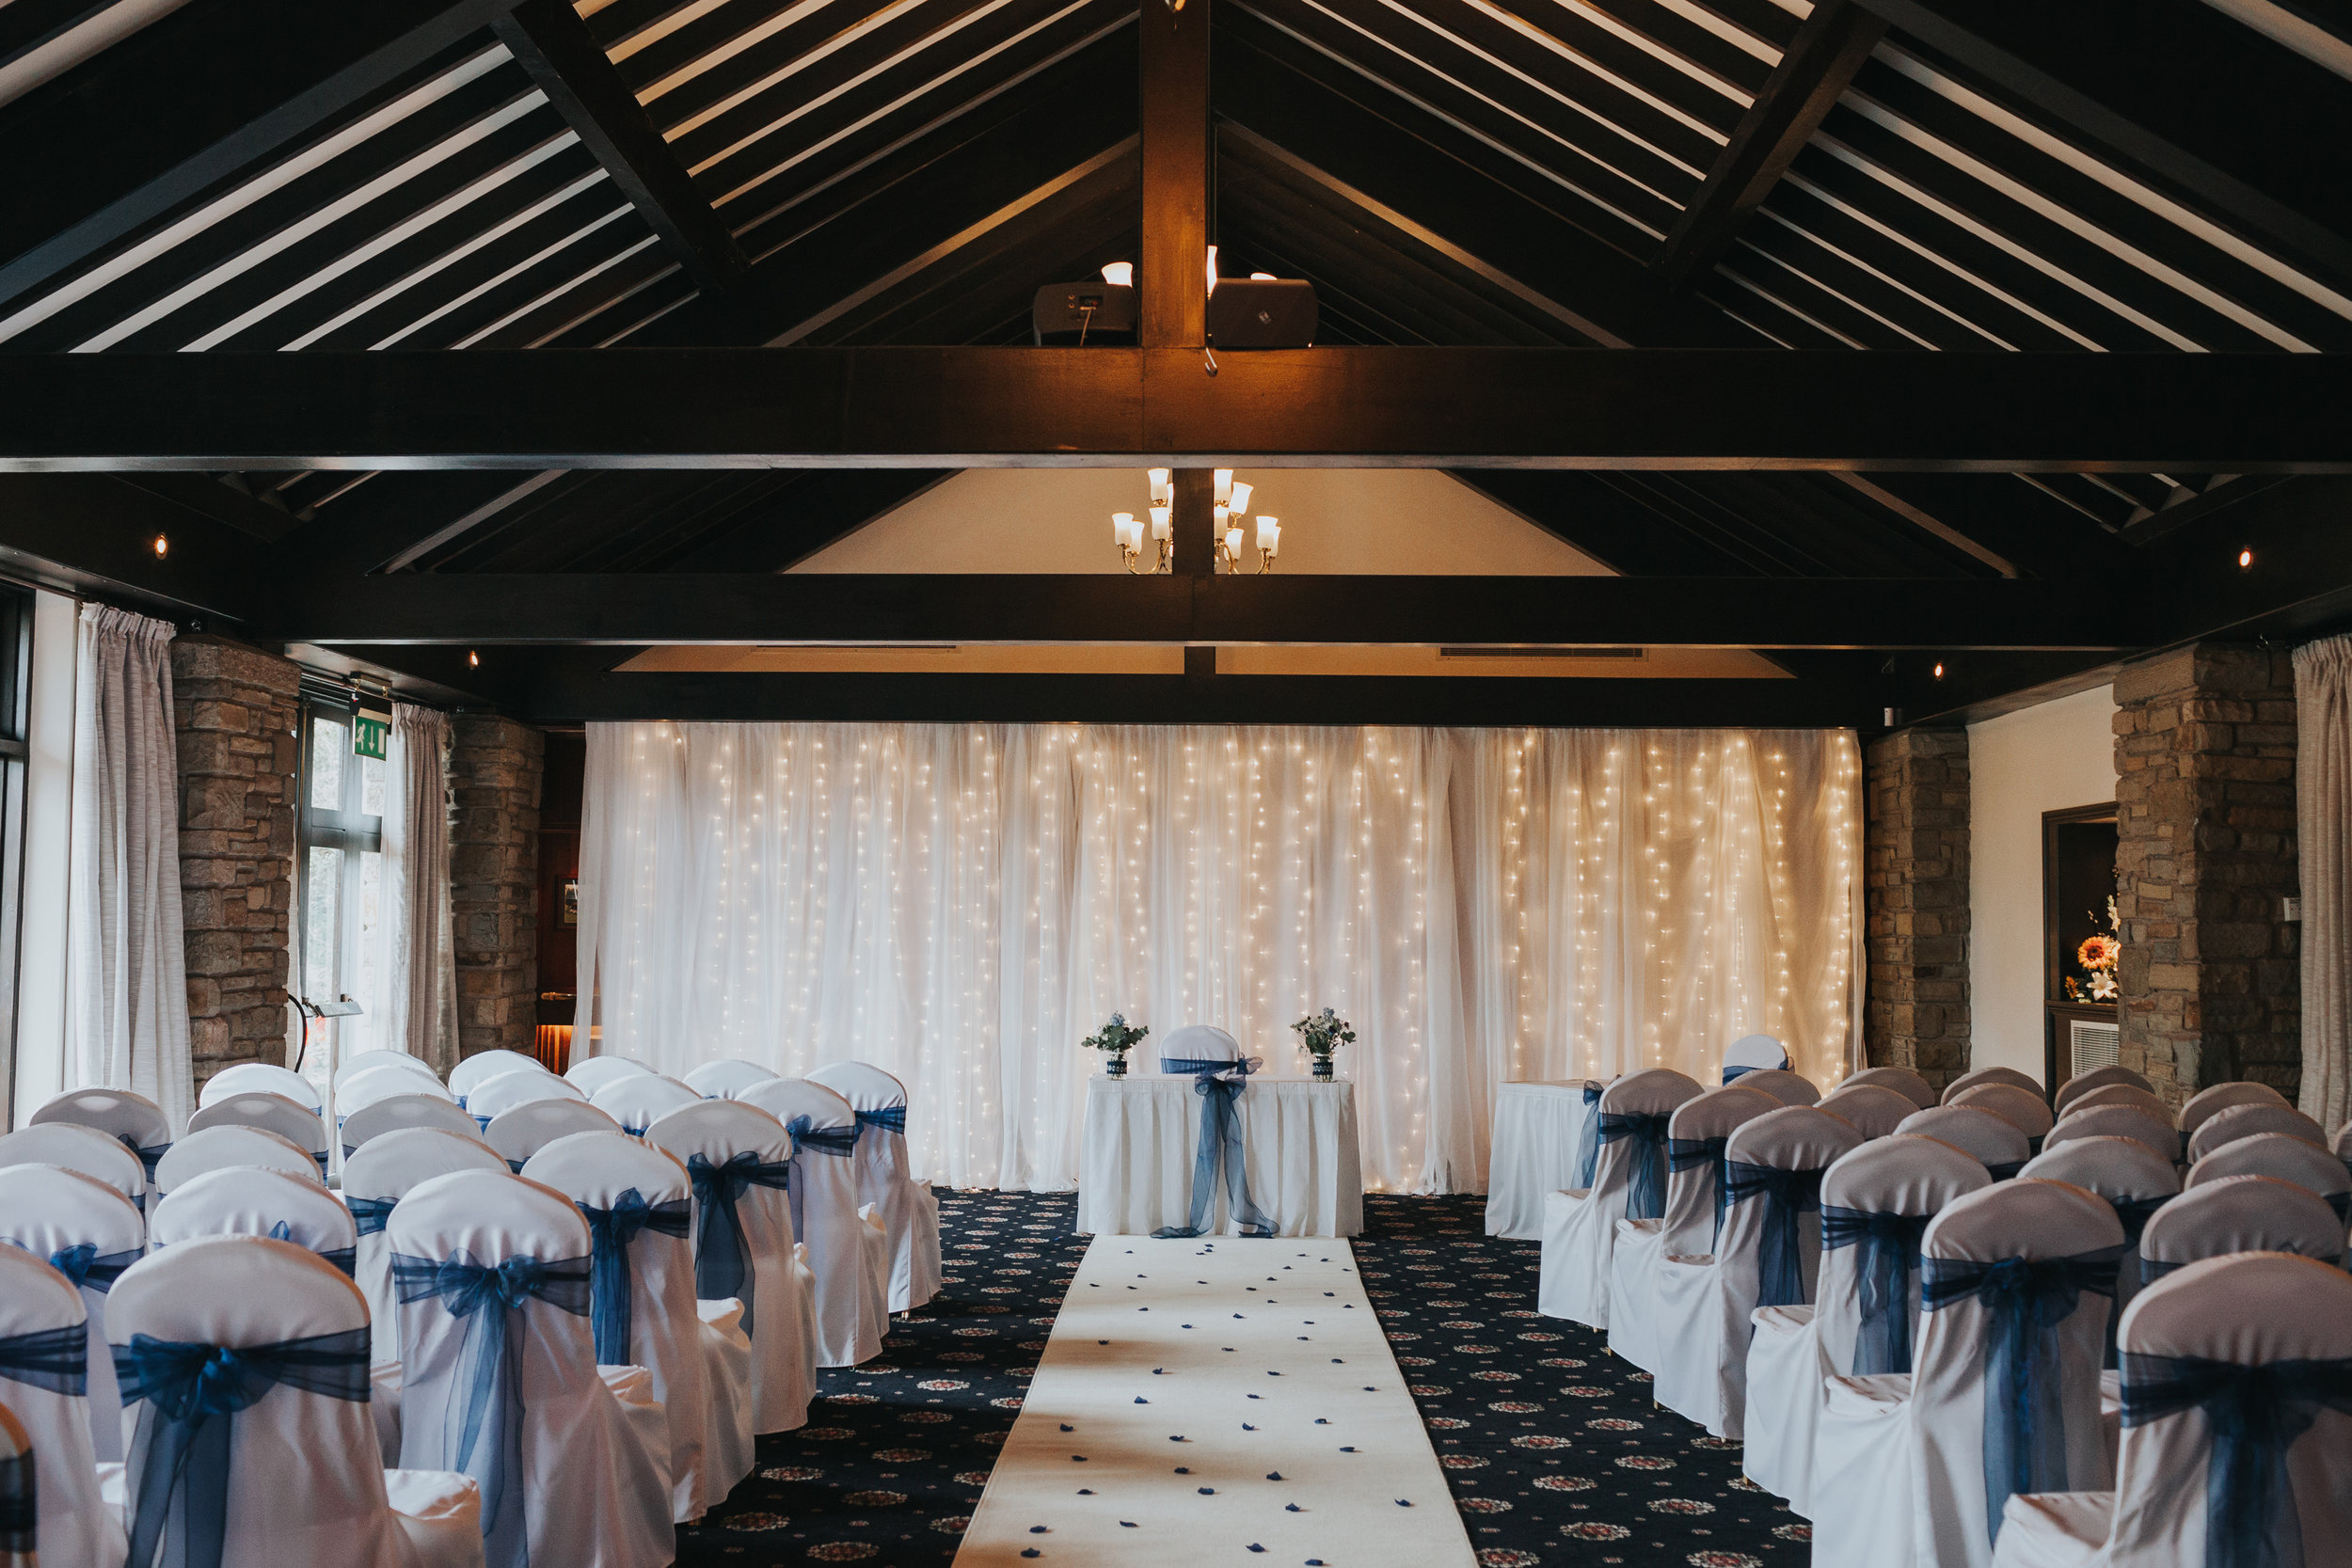 The ceremony room at Mytton Fold.